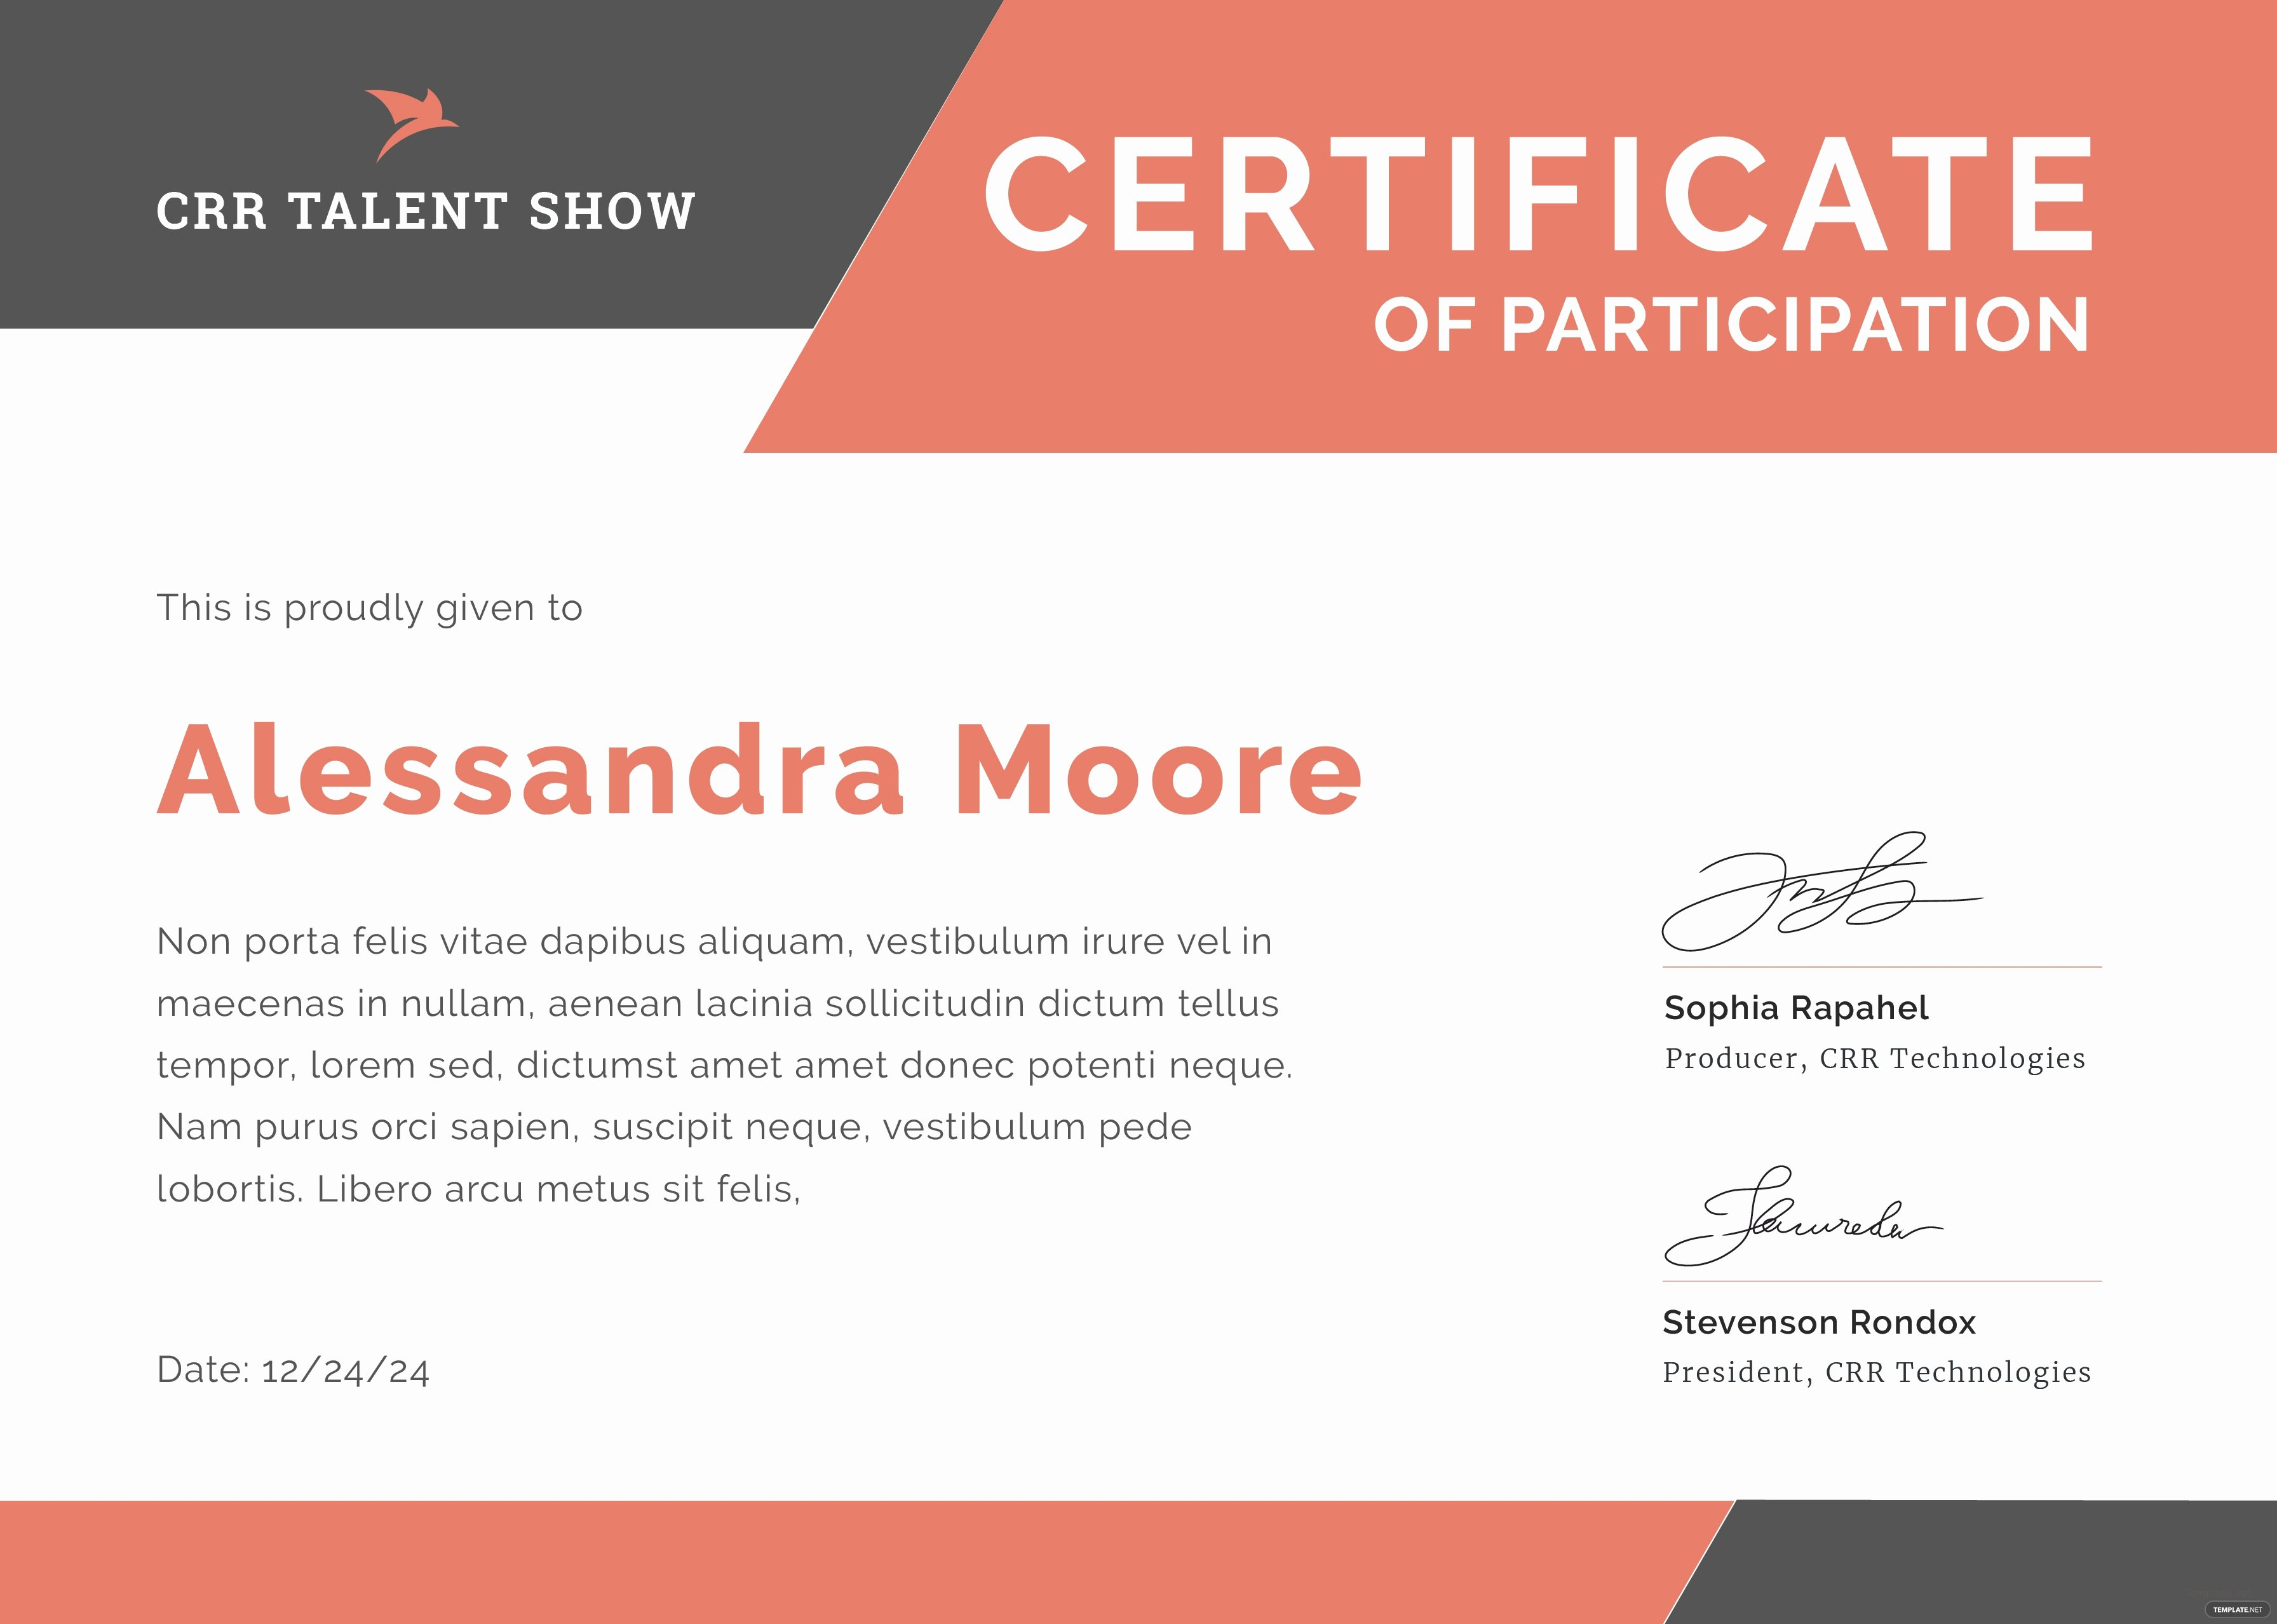 Talent Show Participation Certificate Best Of Talent Show Participation Certificate Template In Adobe